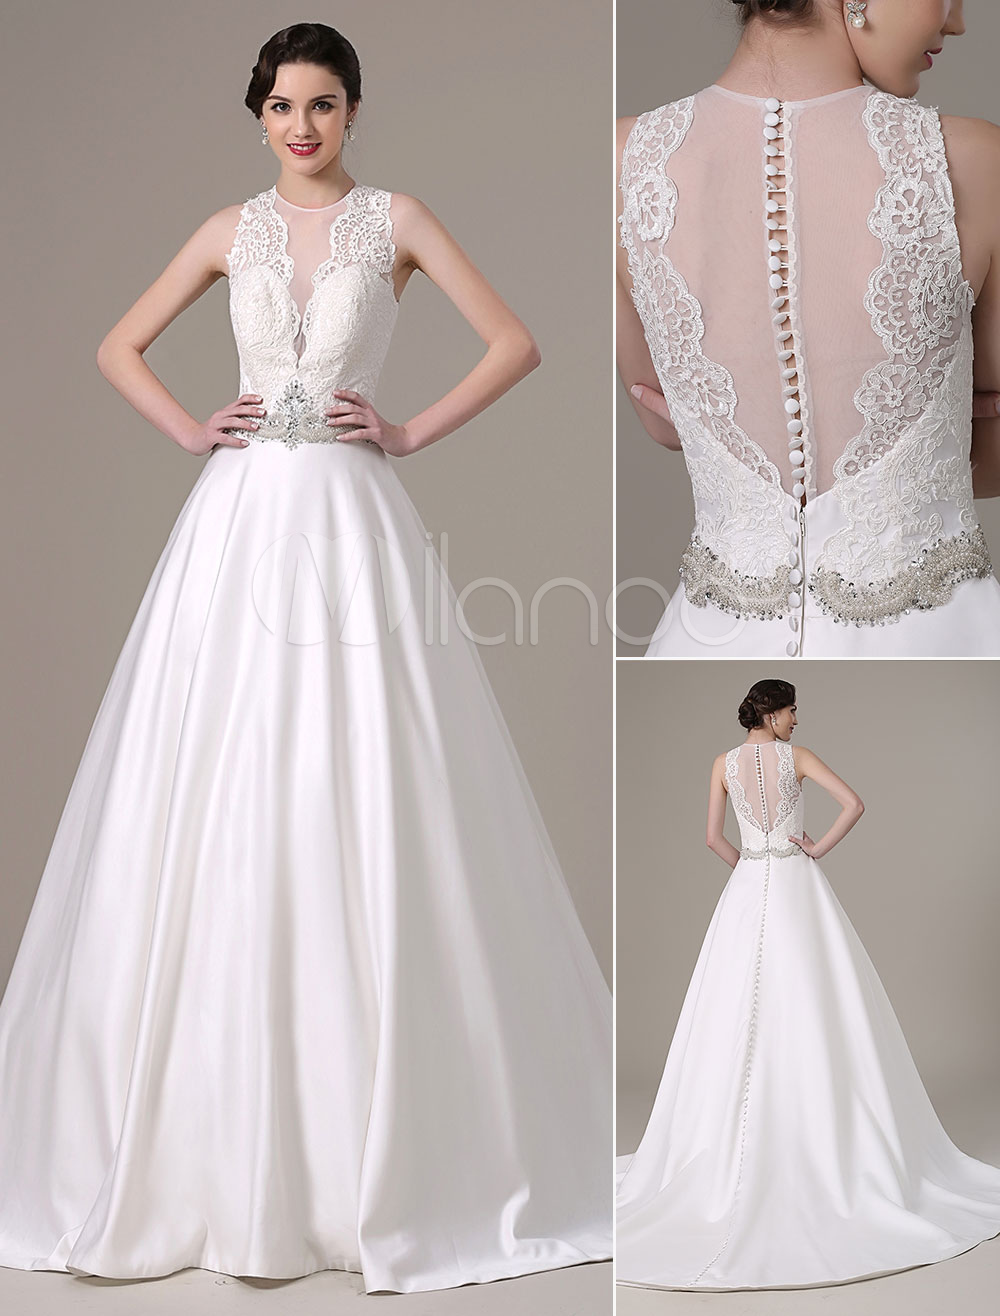 2018 Satin And Lace Ball Gown Wedding Dress Pleated Sheer Bodice And ...